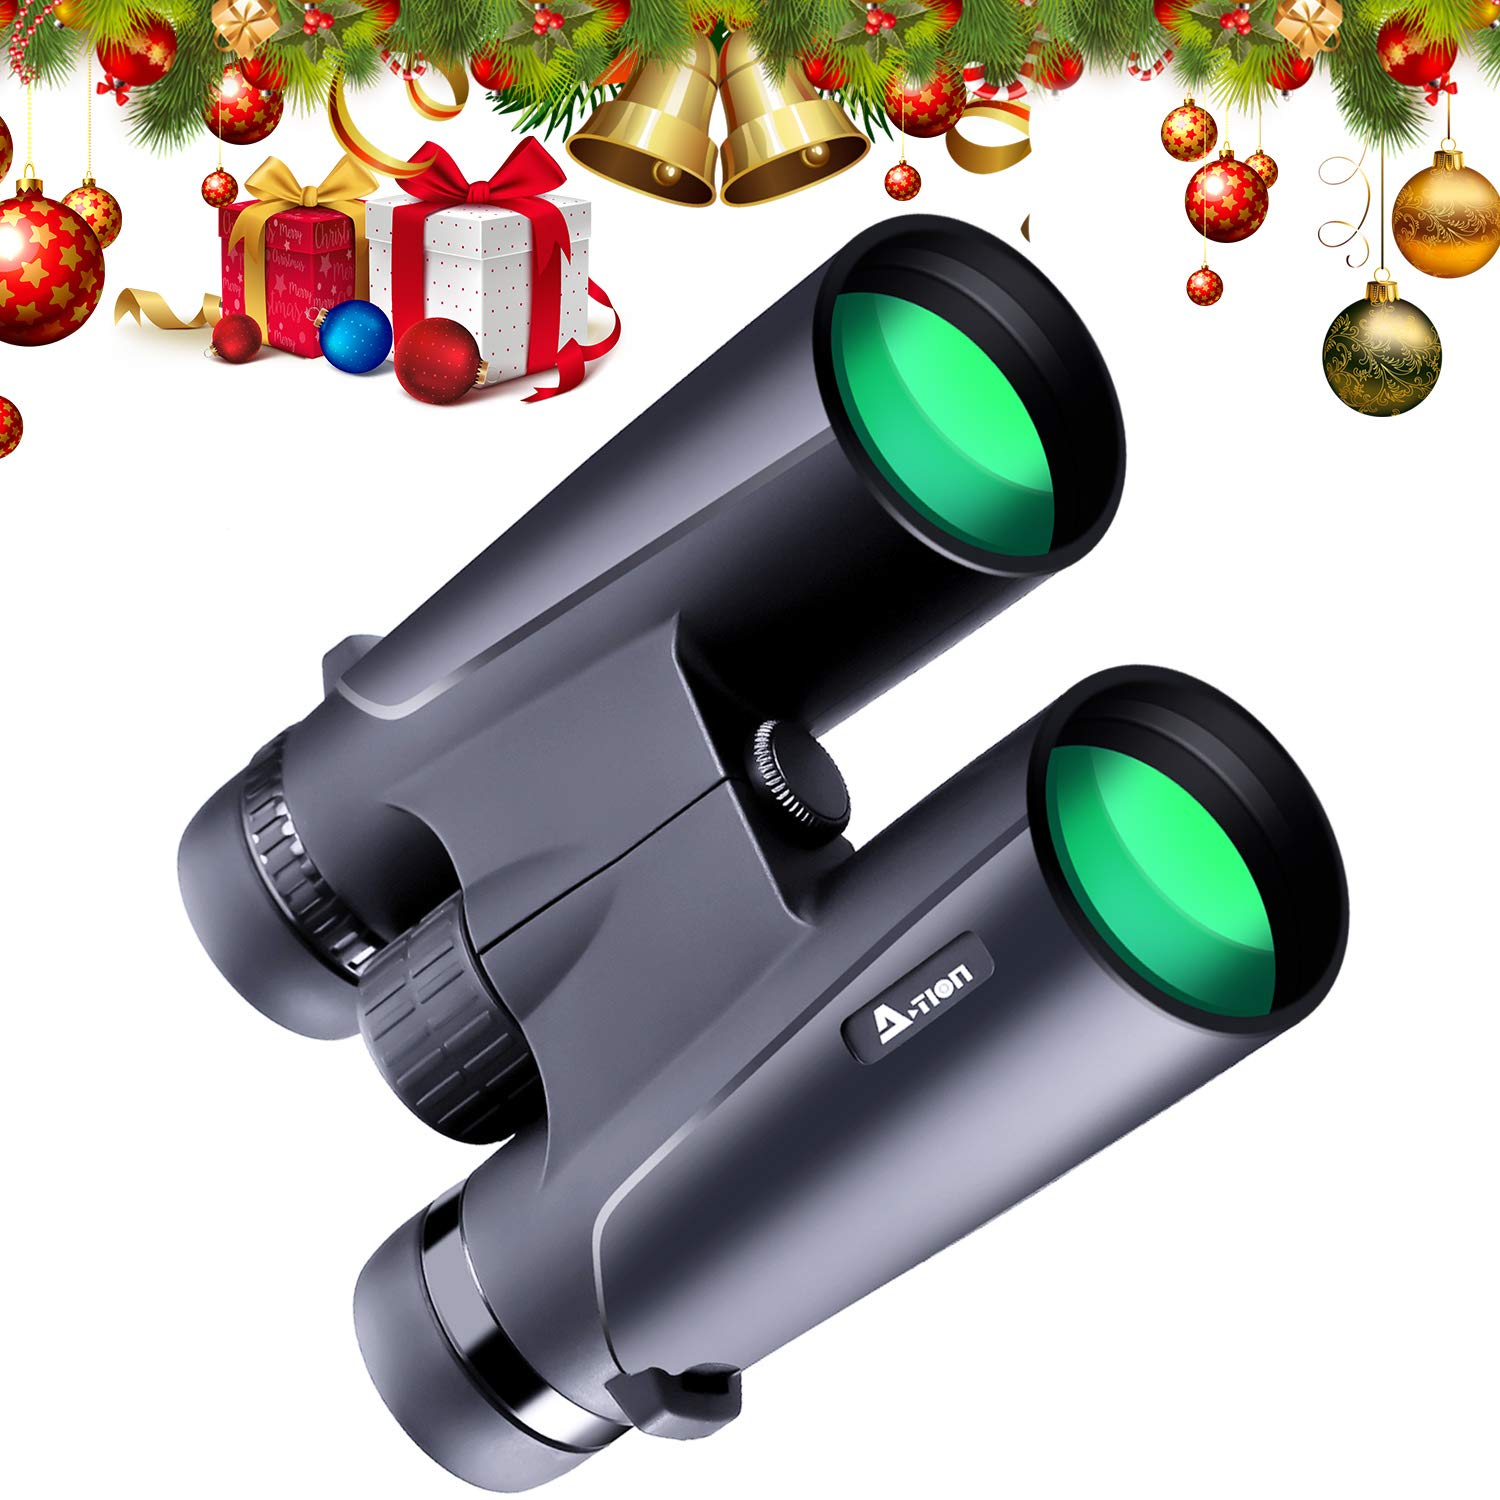 N-Life Professional Binoculars for Adults Low Light Night Vision 12X42 High Power HD Ideal Gift Folding Easy Focus Scope Optics Glasses Adjust Eye Lens for Birds Watching Outdoor Activities Sports